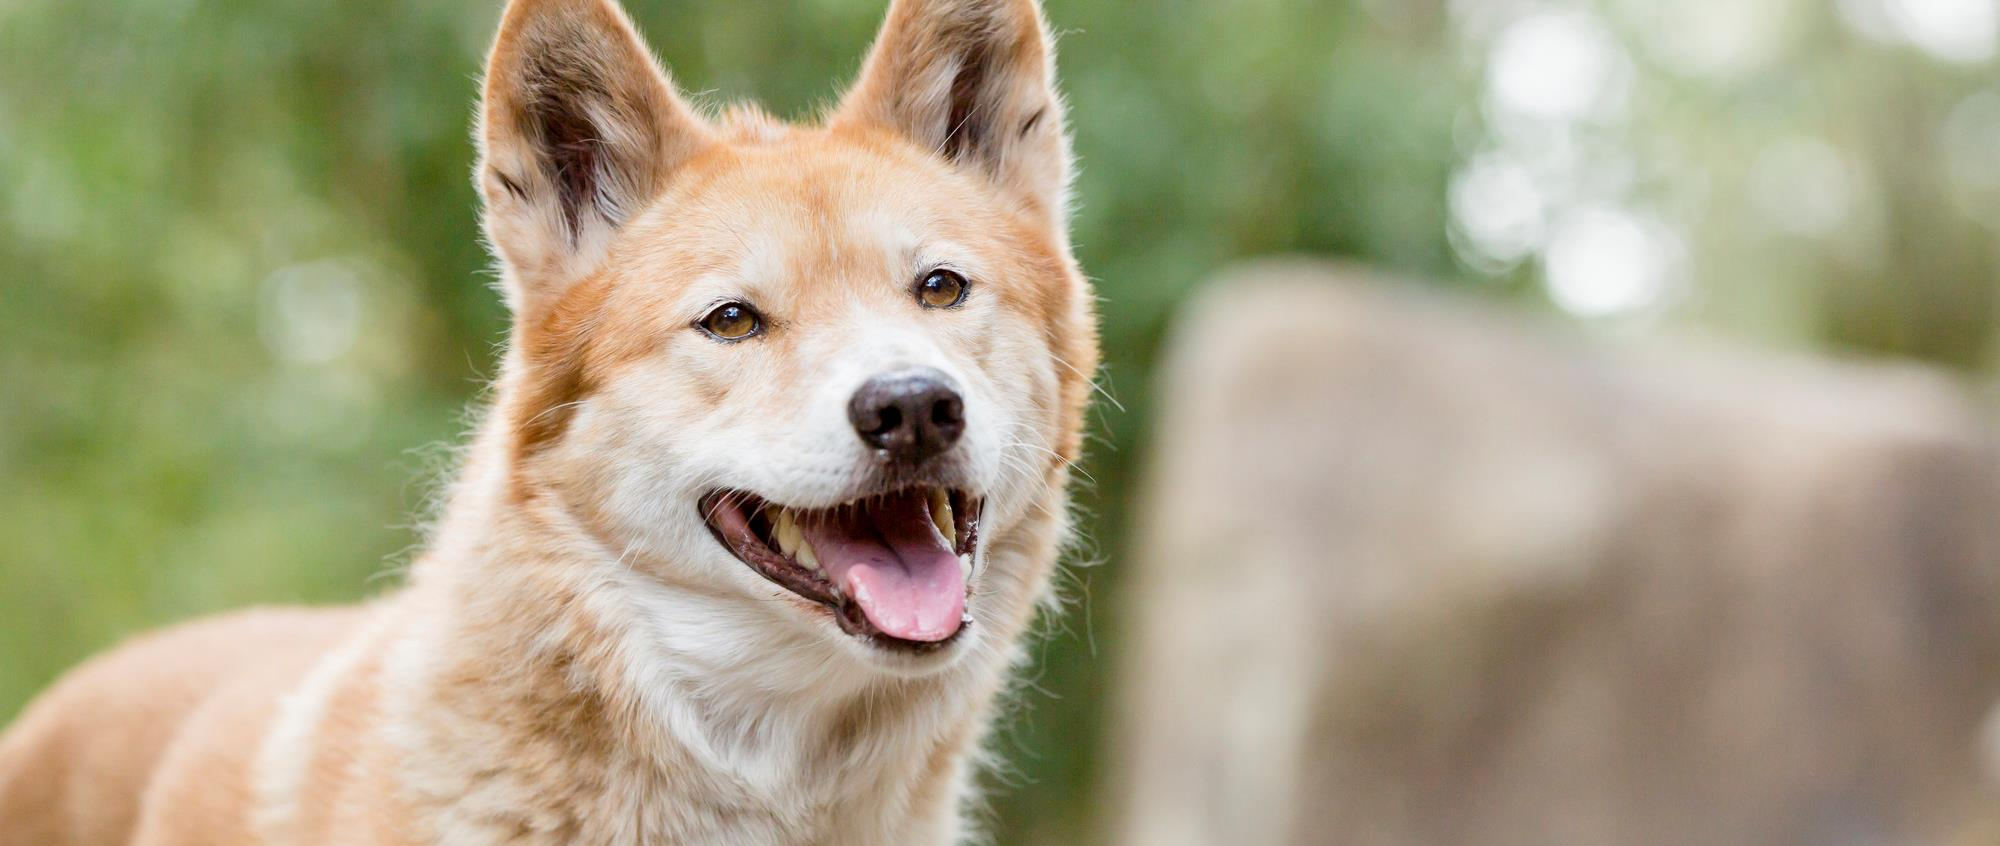 Happy looking dingo with ears pricked and its mouth open with pink tongue out.